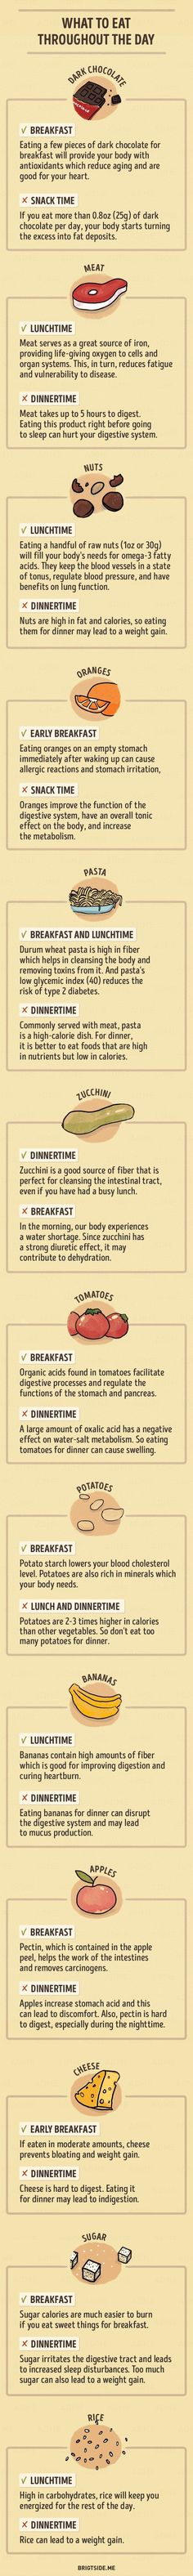 We all know that what we eat has a big impact on our physical well being. But did you know that when we eat also matters? In fact, as studies have shown, eating certain foods at the appropriate times throughout the day will help you get the maximum health benefits from your diet. To help you...